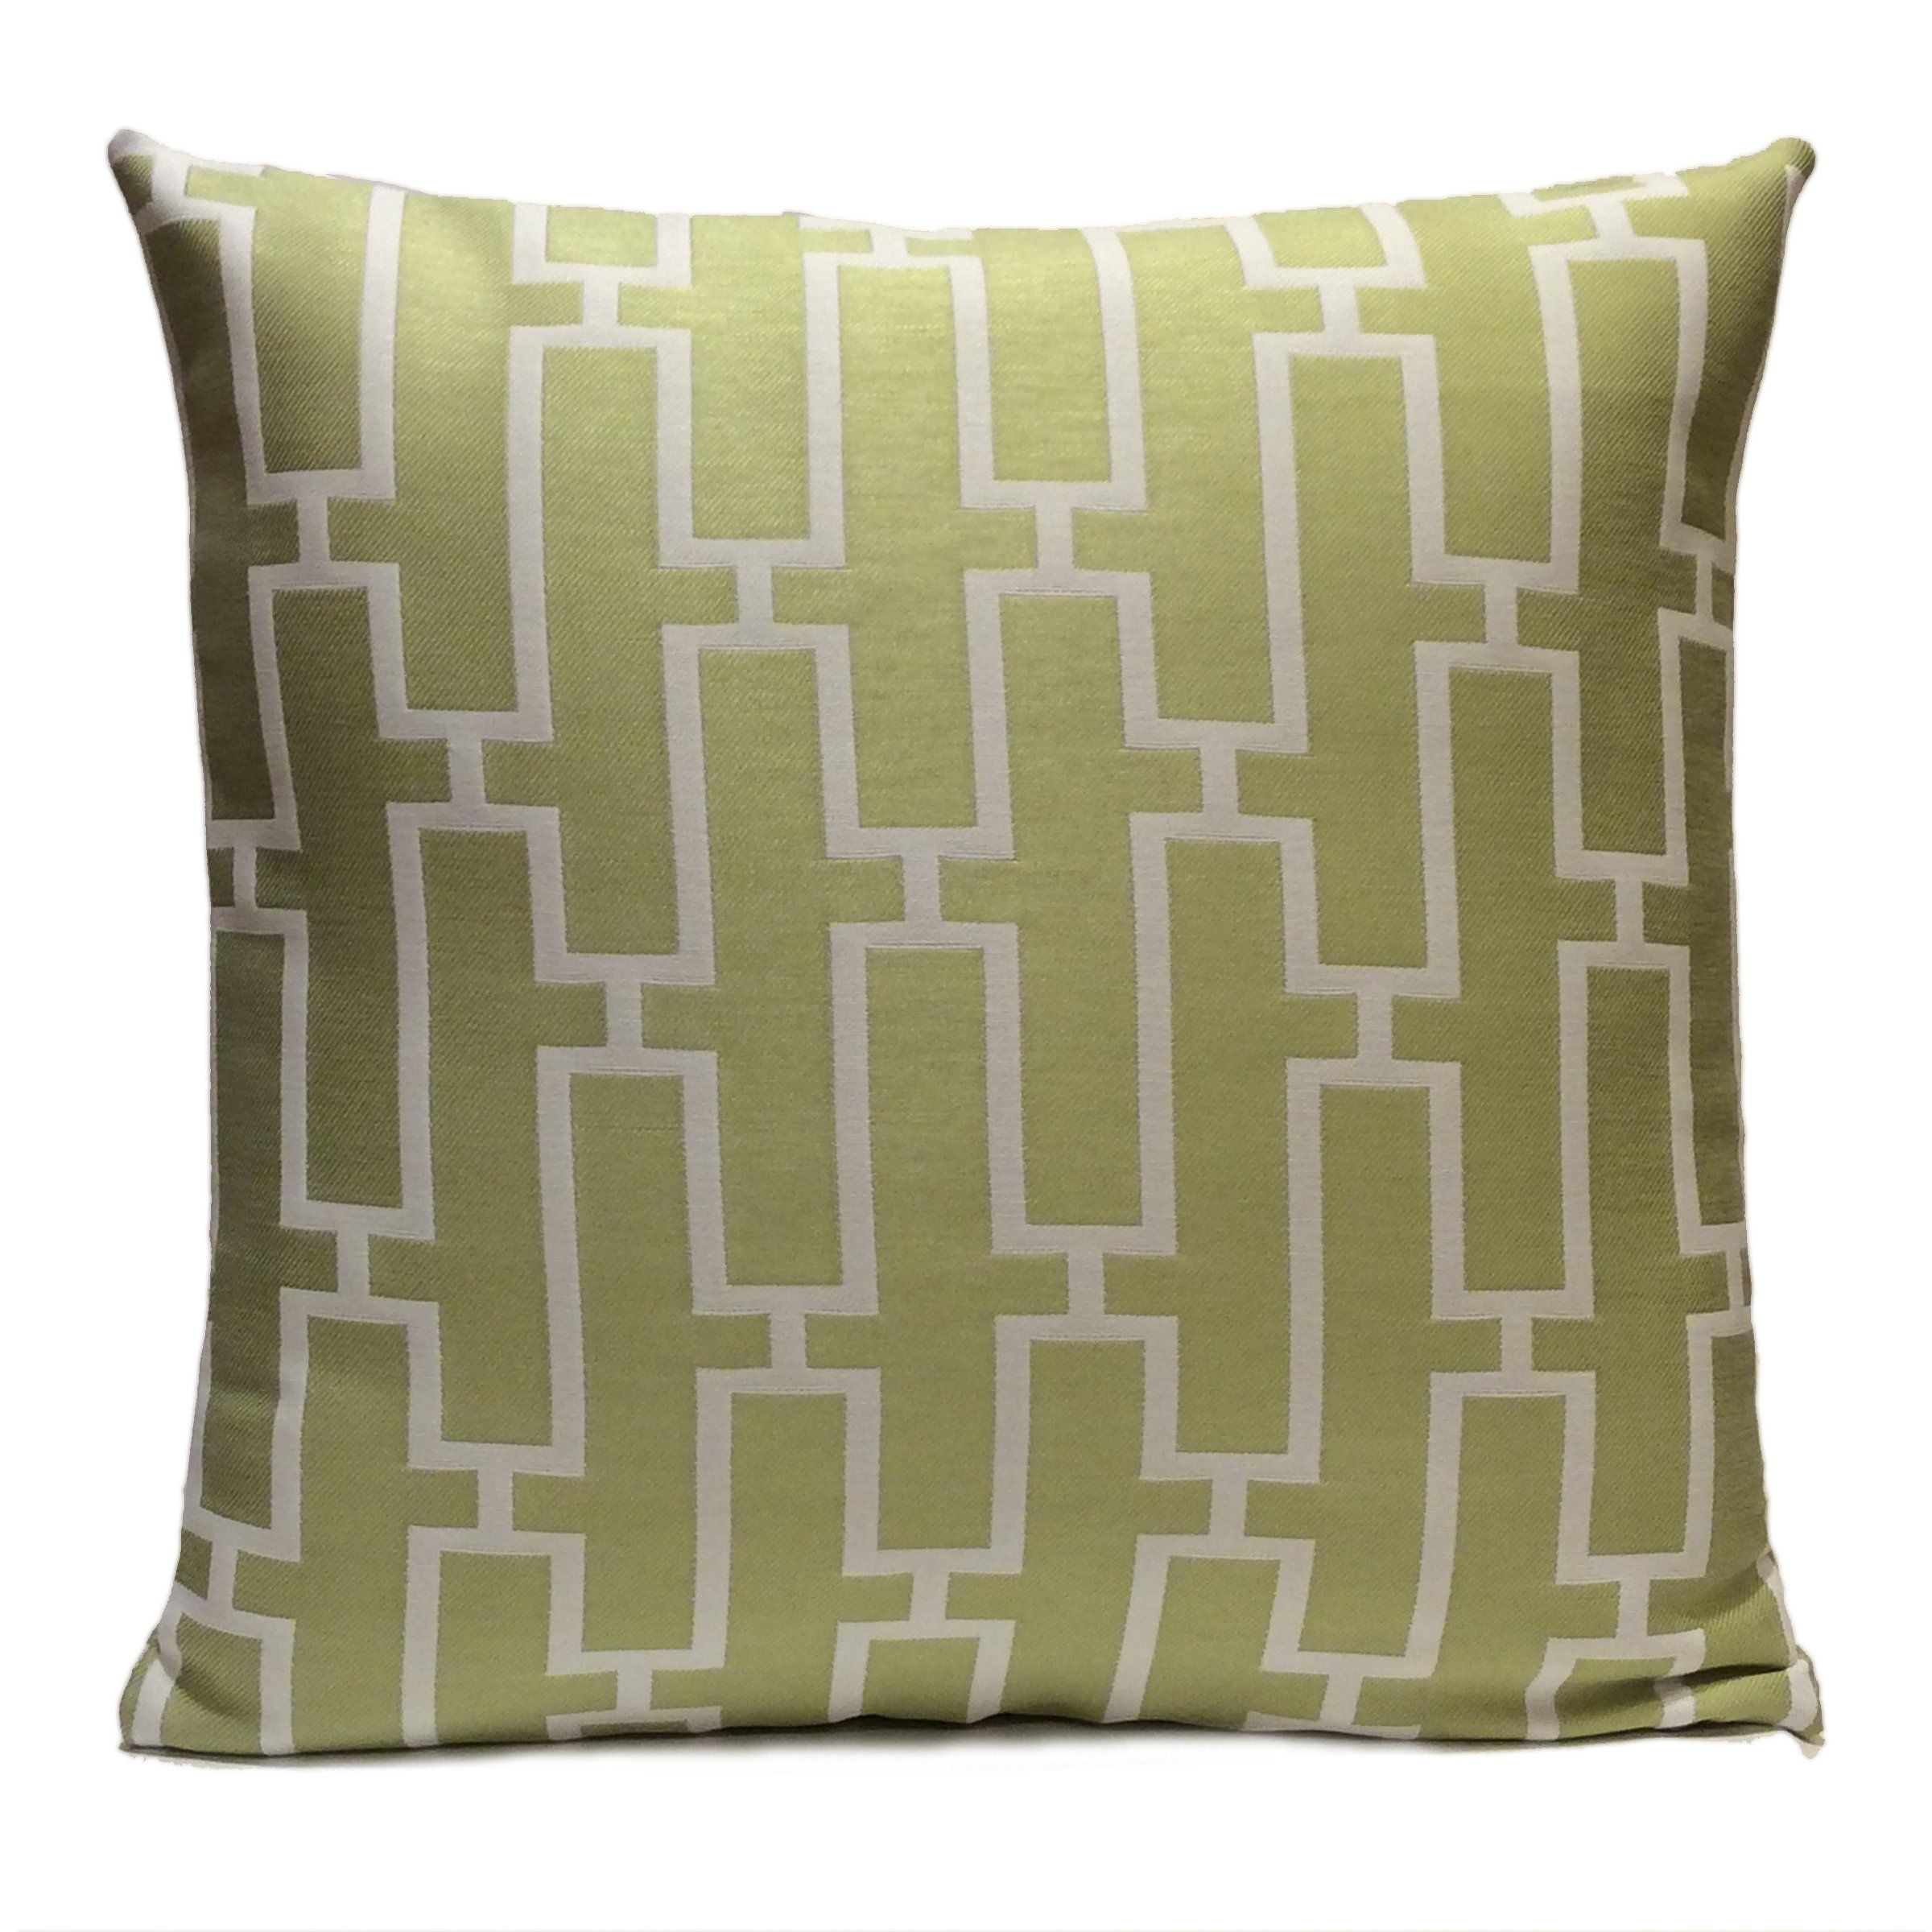 White and lime green pillow throw pillow cover decorative pillow